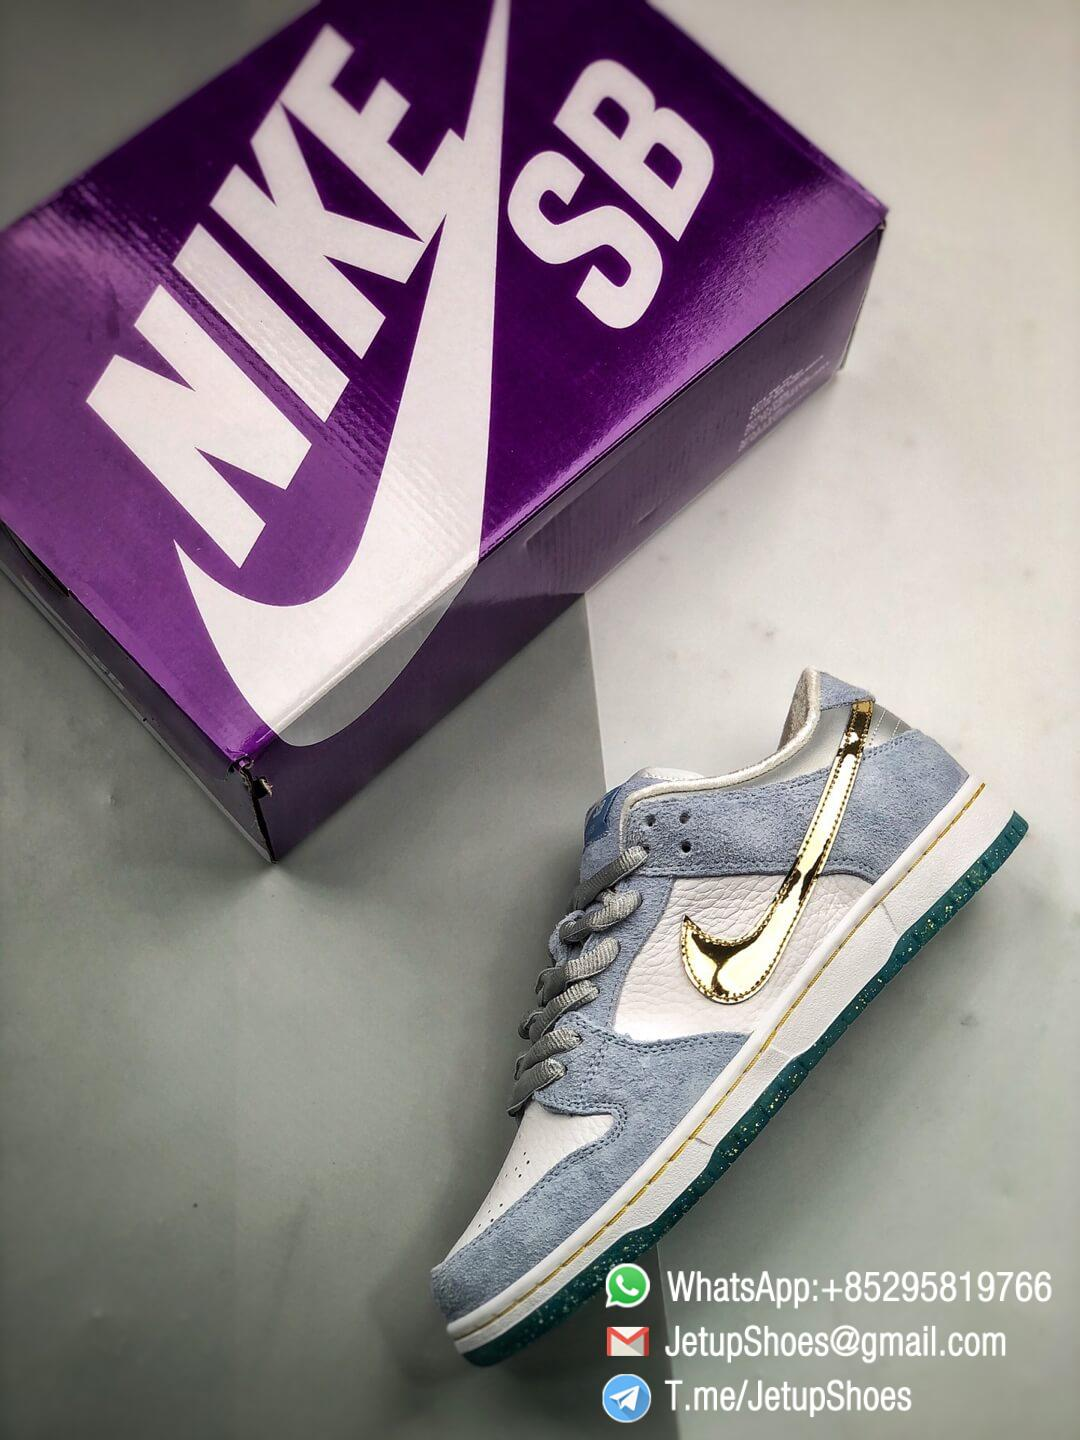 Best Replica Sneakers Sean Cliver x Nike Dunk Low SB Holiday Special DC9936 100 09